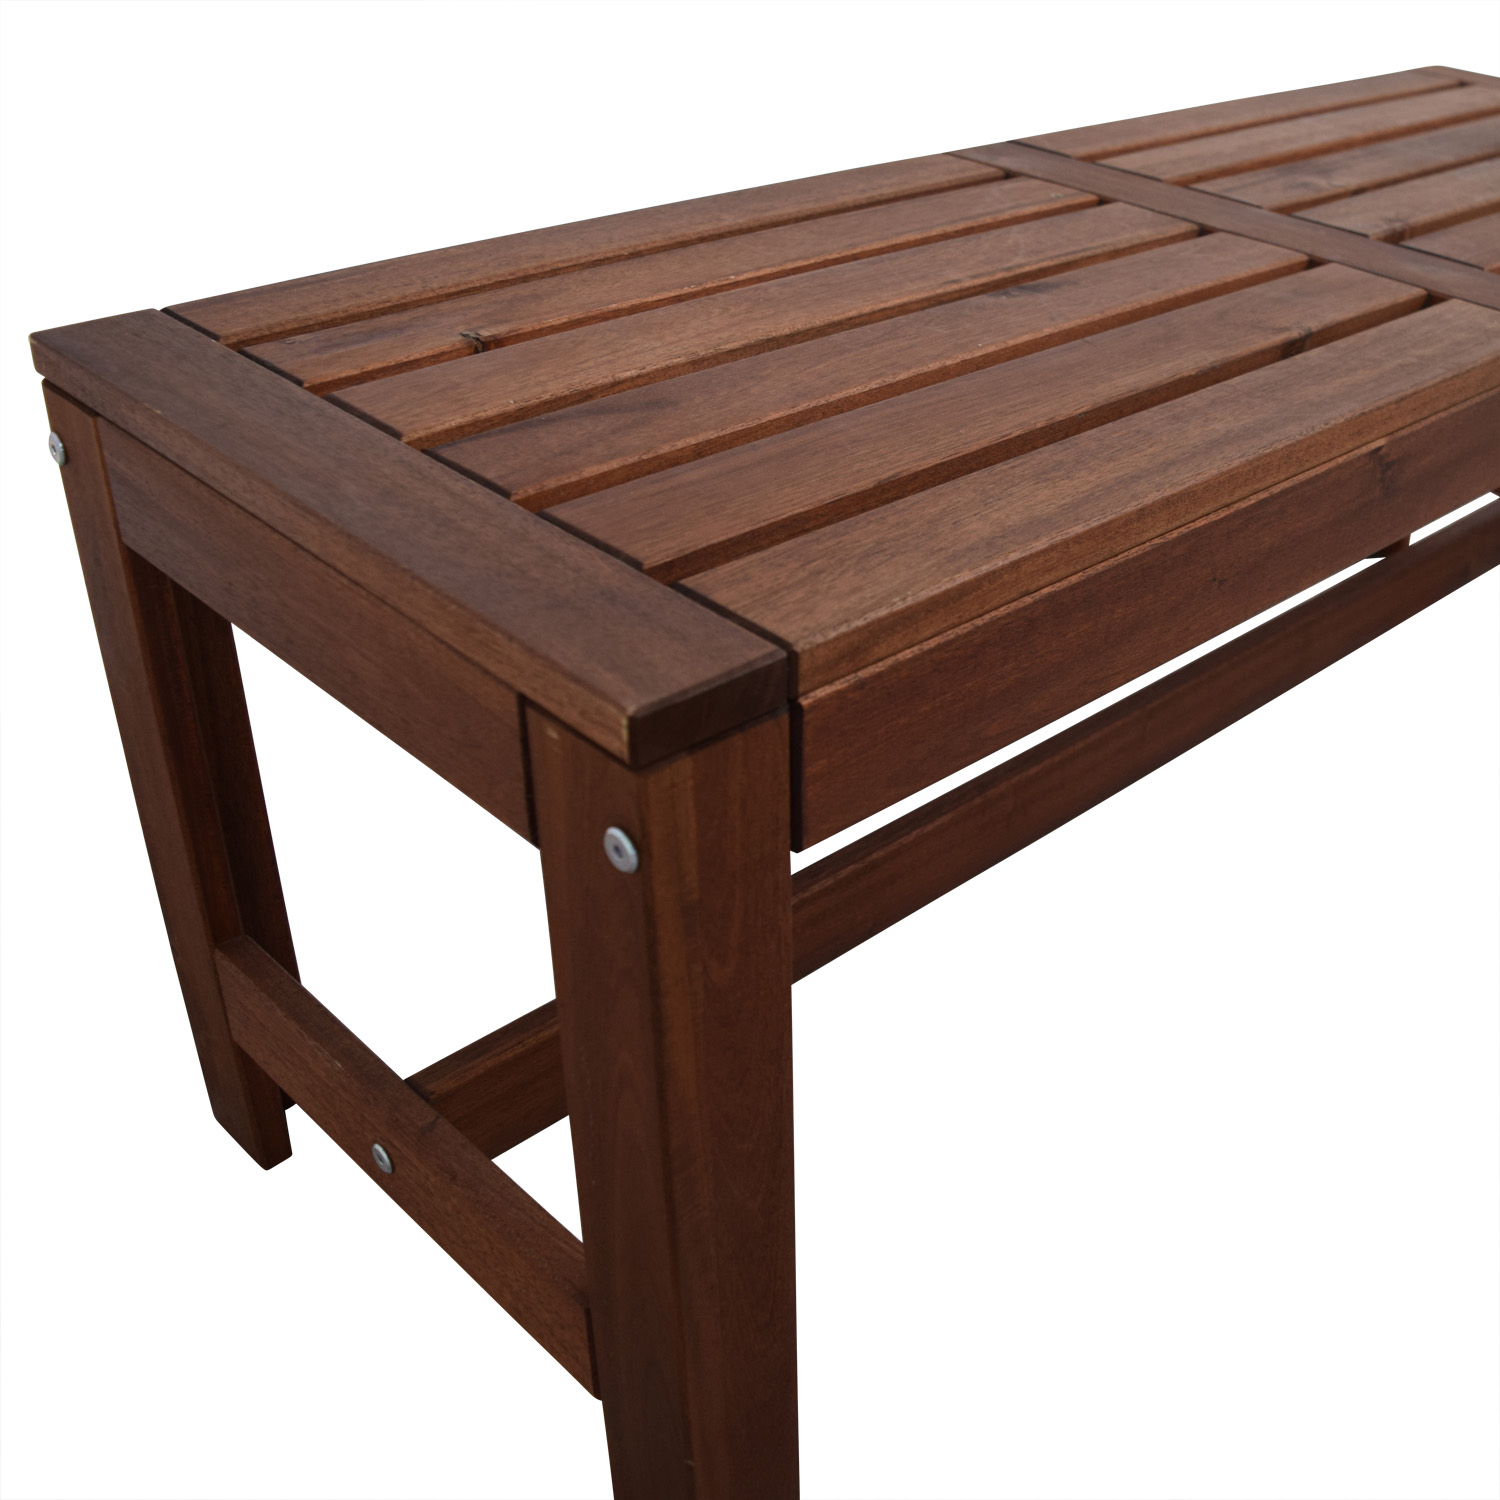 Merveilleux ... Downtown Furniture Downtown Furniture Wooden Bench On Sale ...